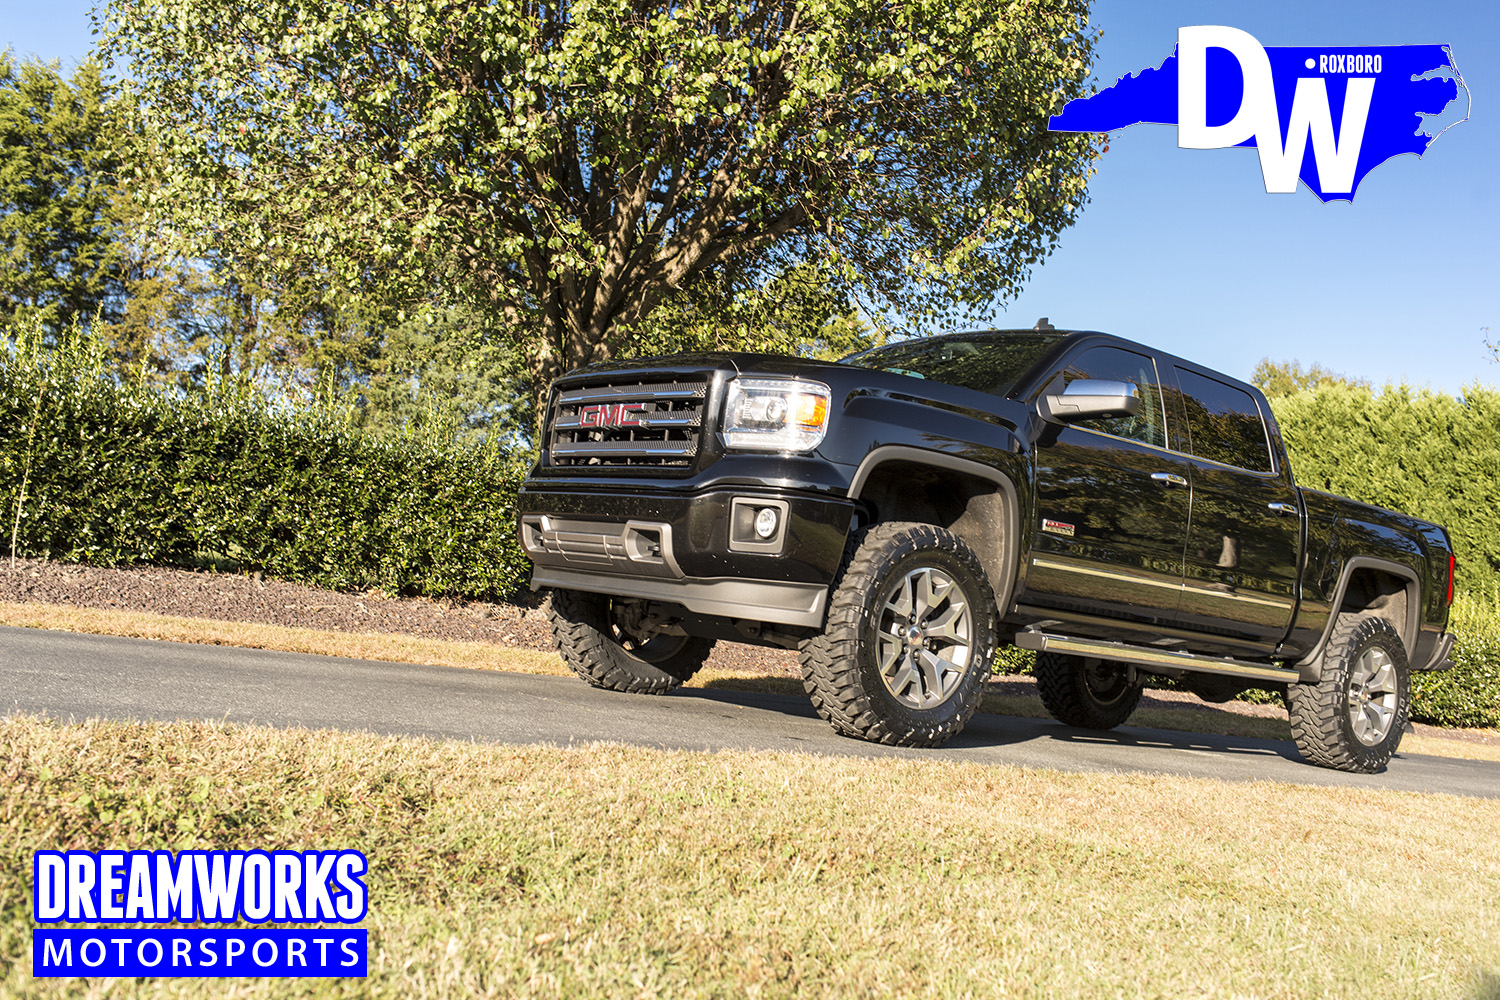 Black-Gmc-Sierra-by-Dreamworksmotorsports-1.jpg